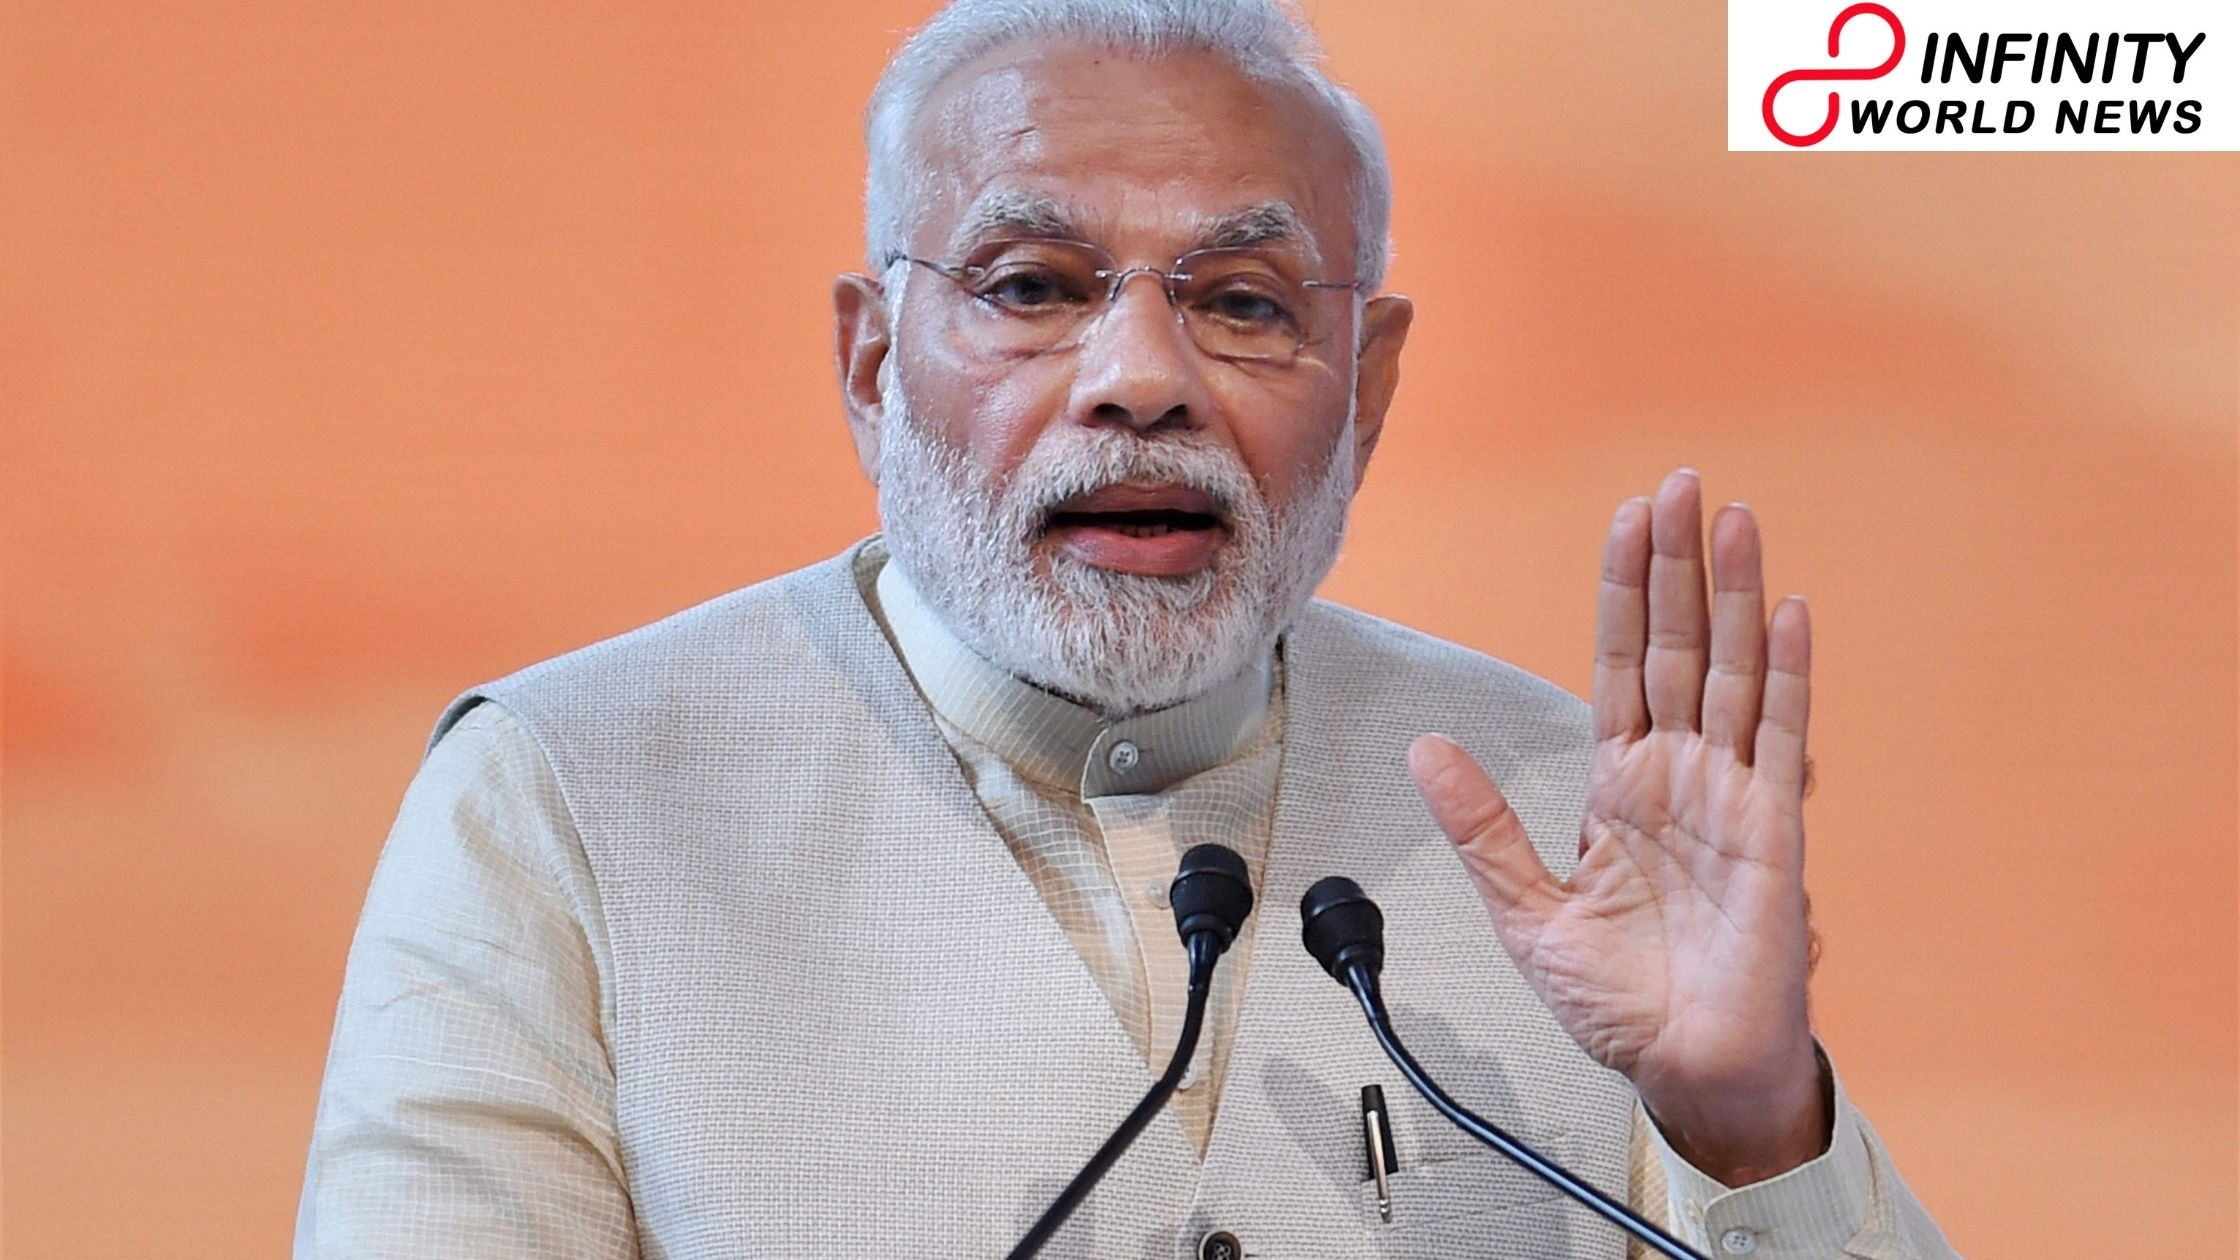 Battling difficulties in life undauntedly is a genuine win: PM Modi to discourse weakened lady